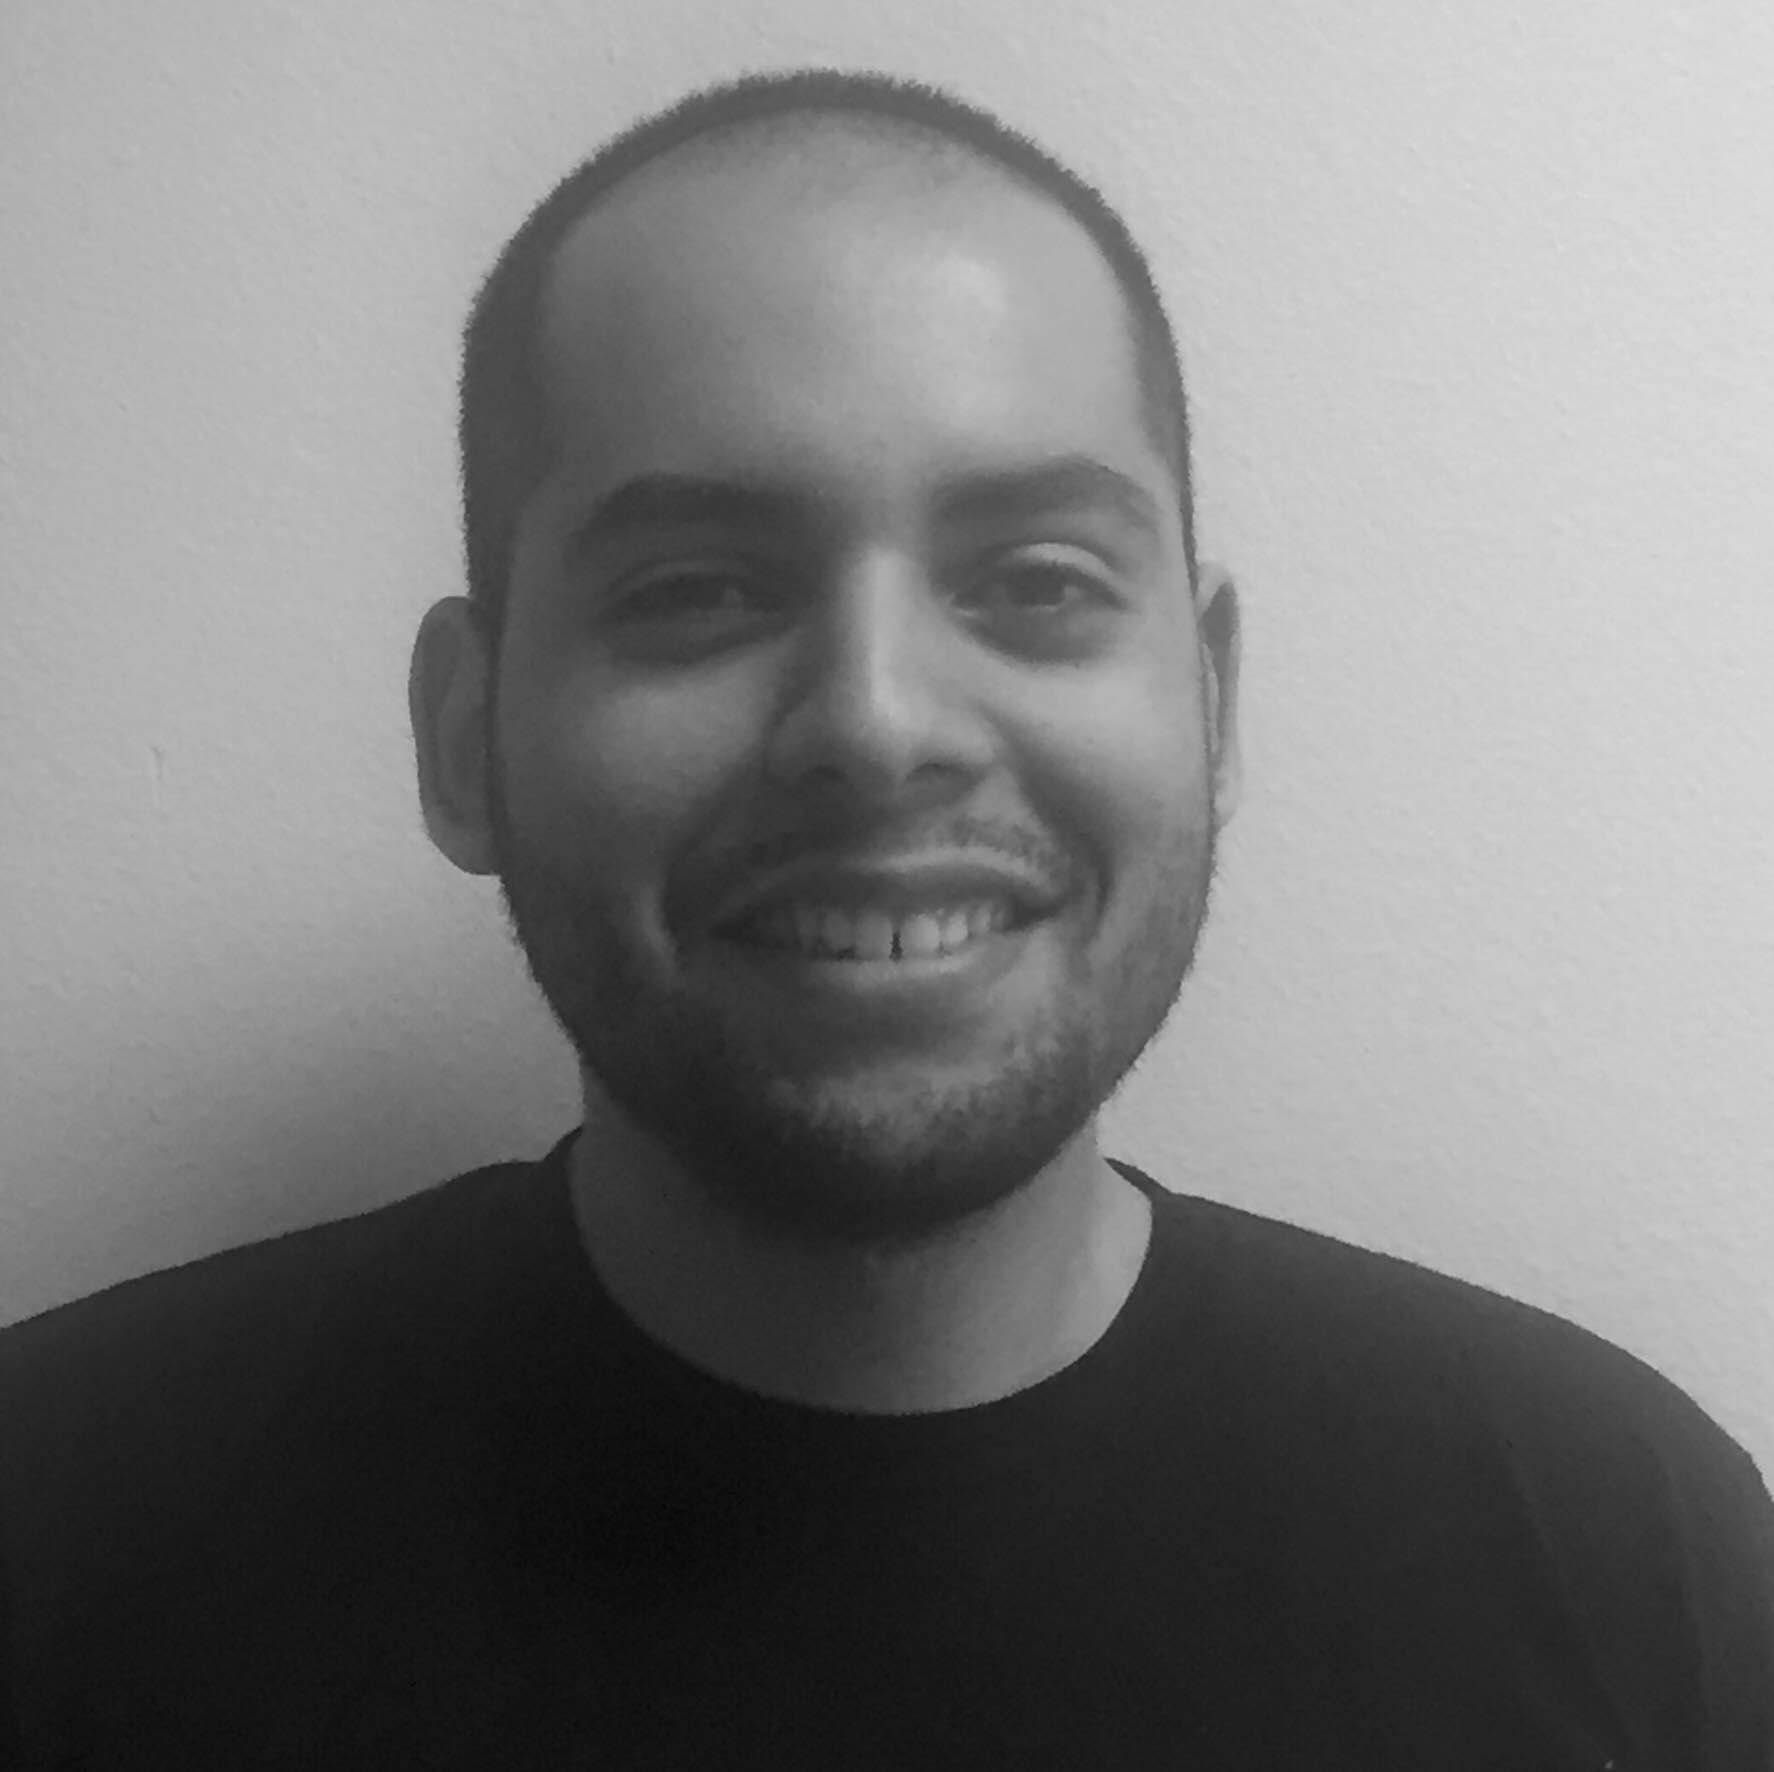 RICARDO TIJERO    SENIOR APPLICATION DEVELOPER